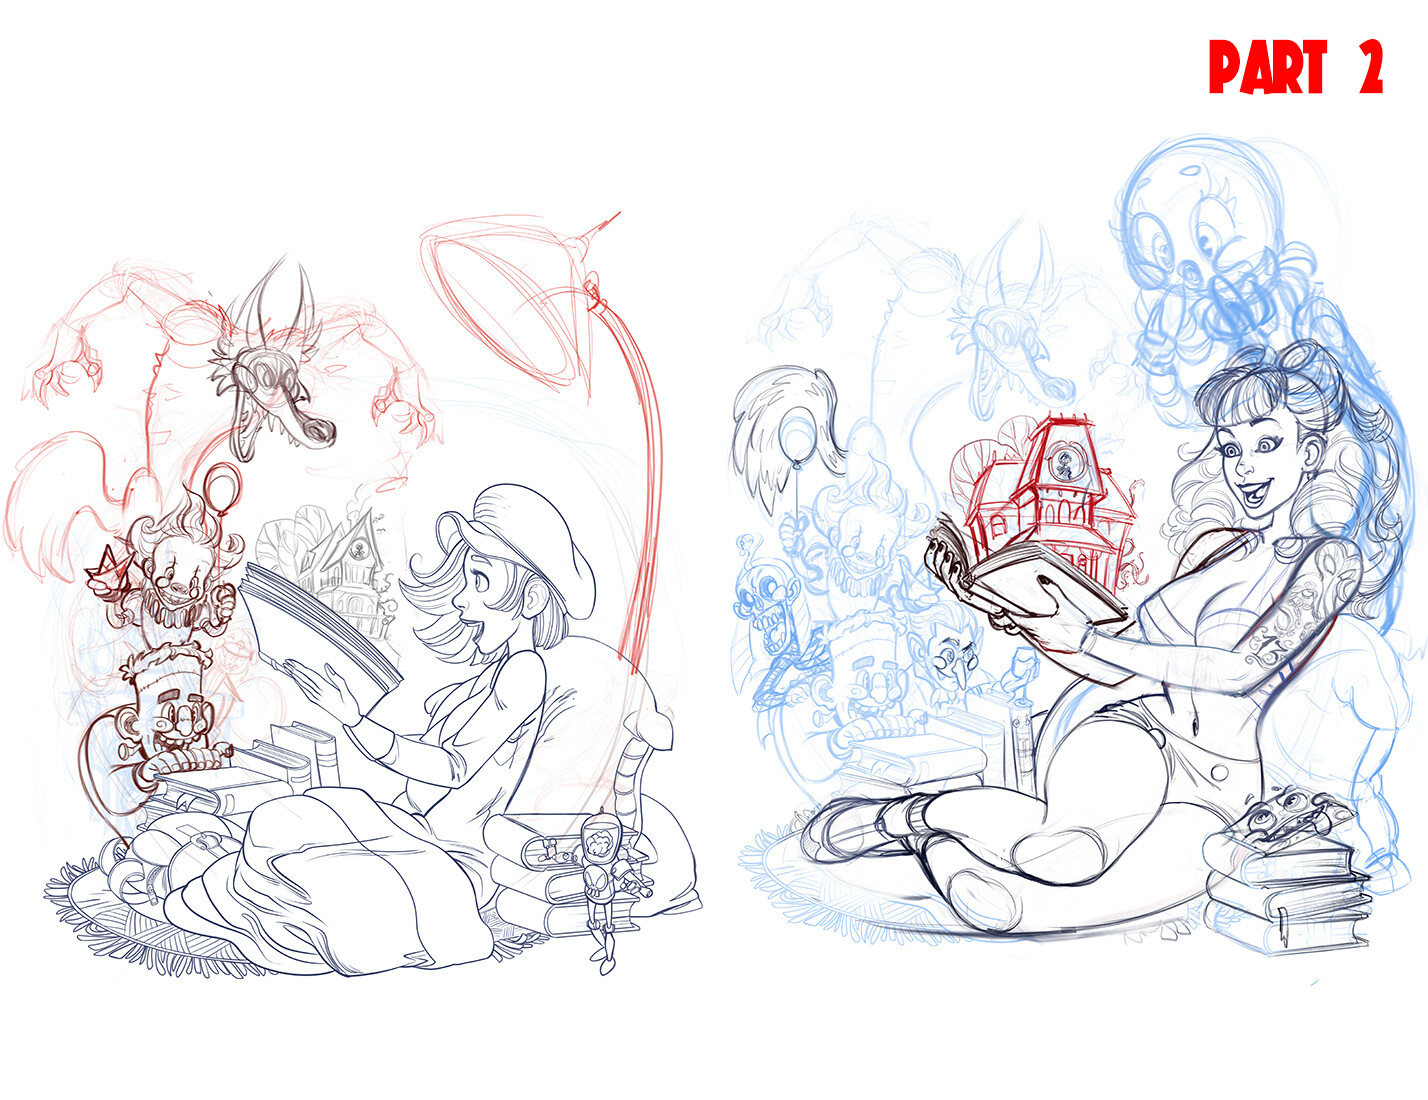 Changes to the initial remake with lowbrow characters and the final sketch.